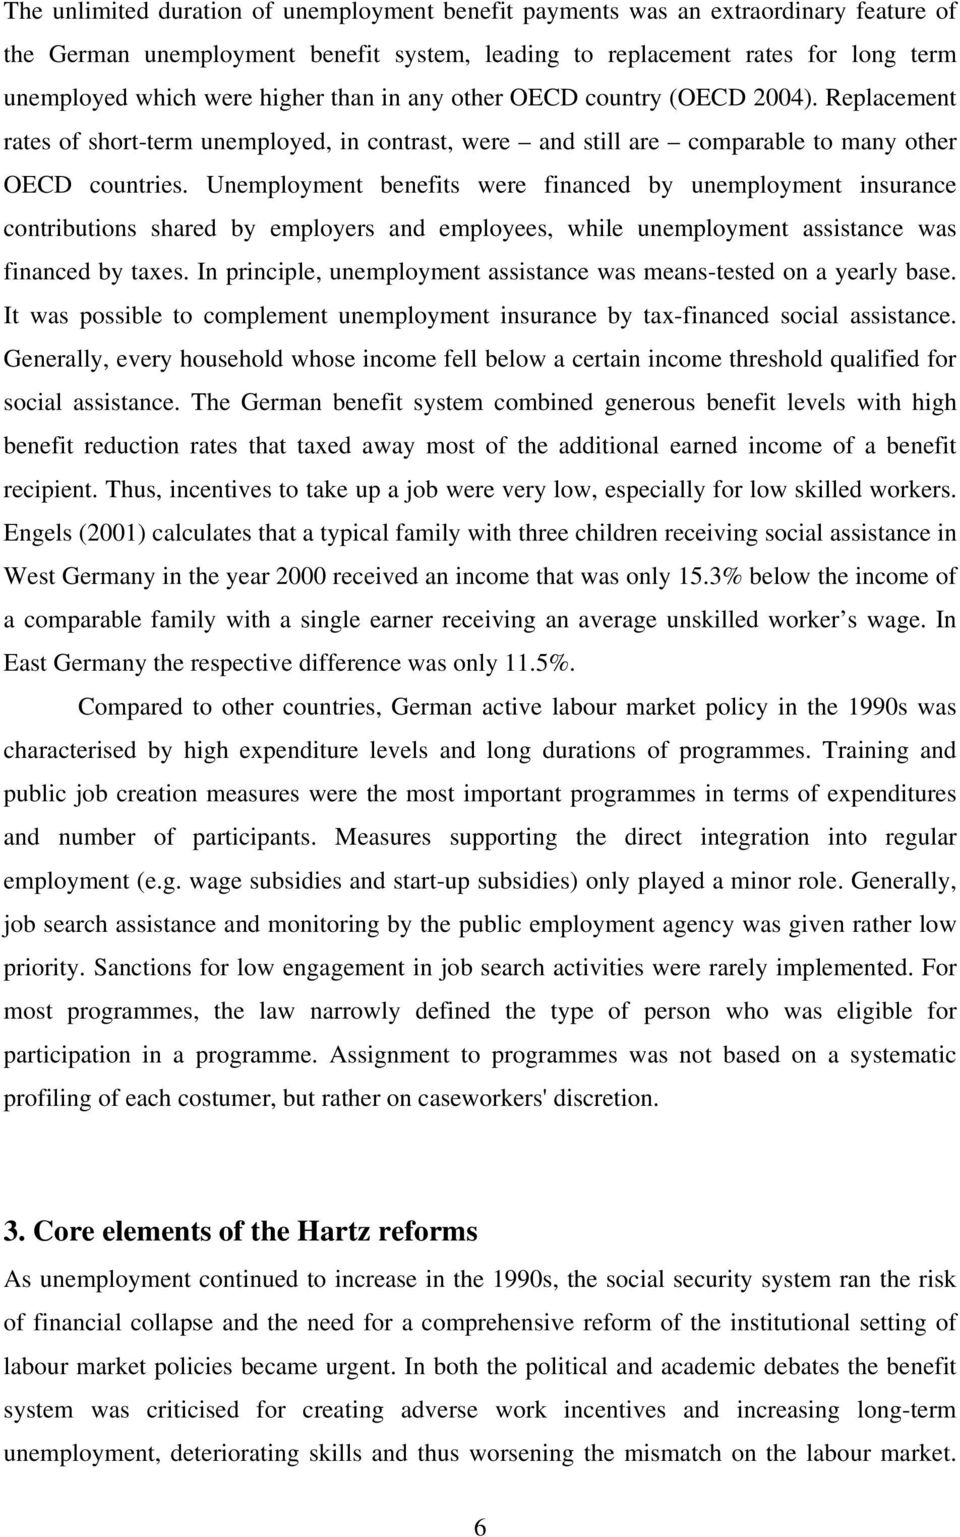 Unemployment benefits were financed by unemployment insurance contributions shared by employers and employees, while unemployment assistance was financed by taxes.